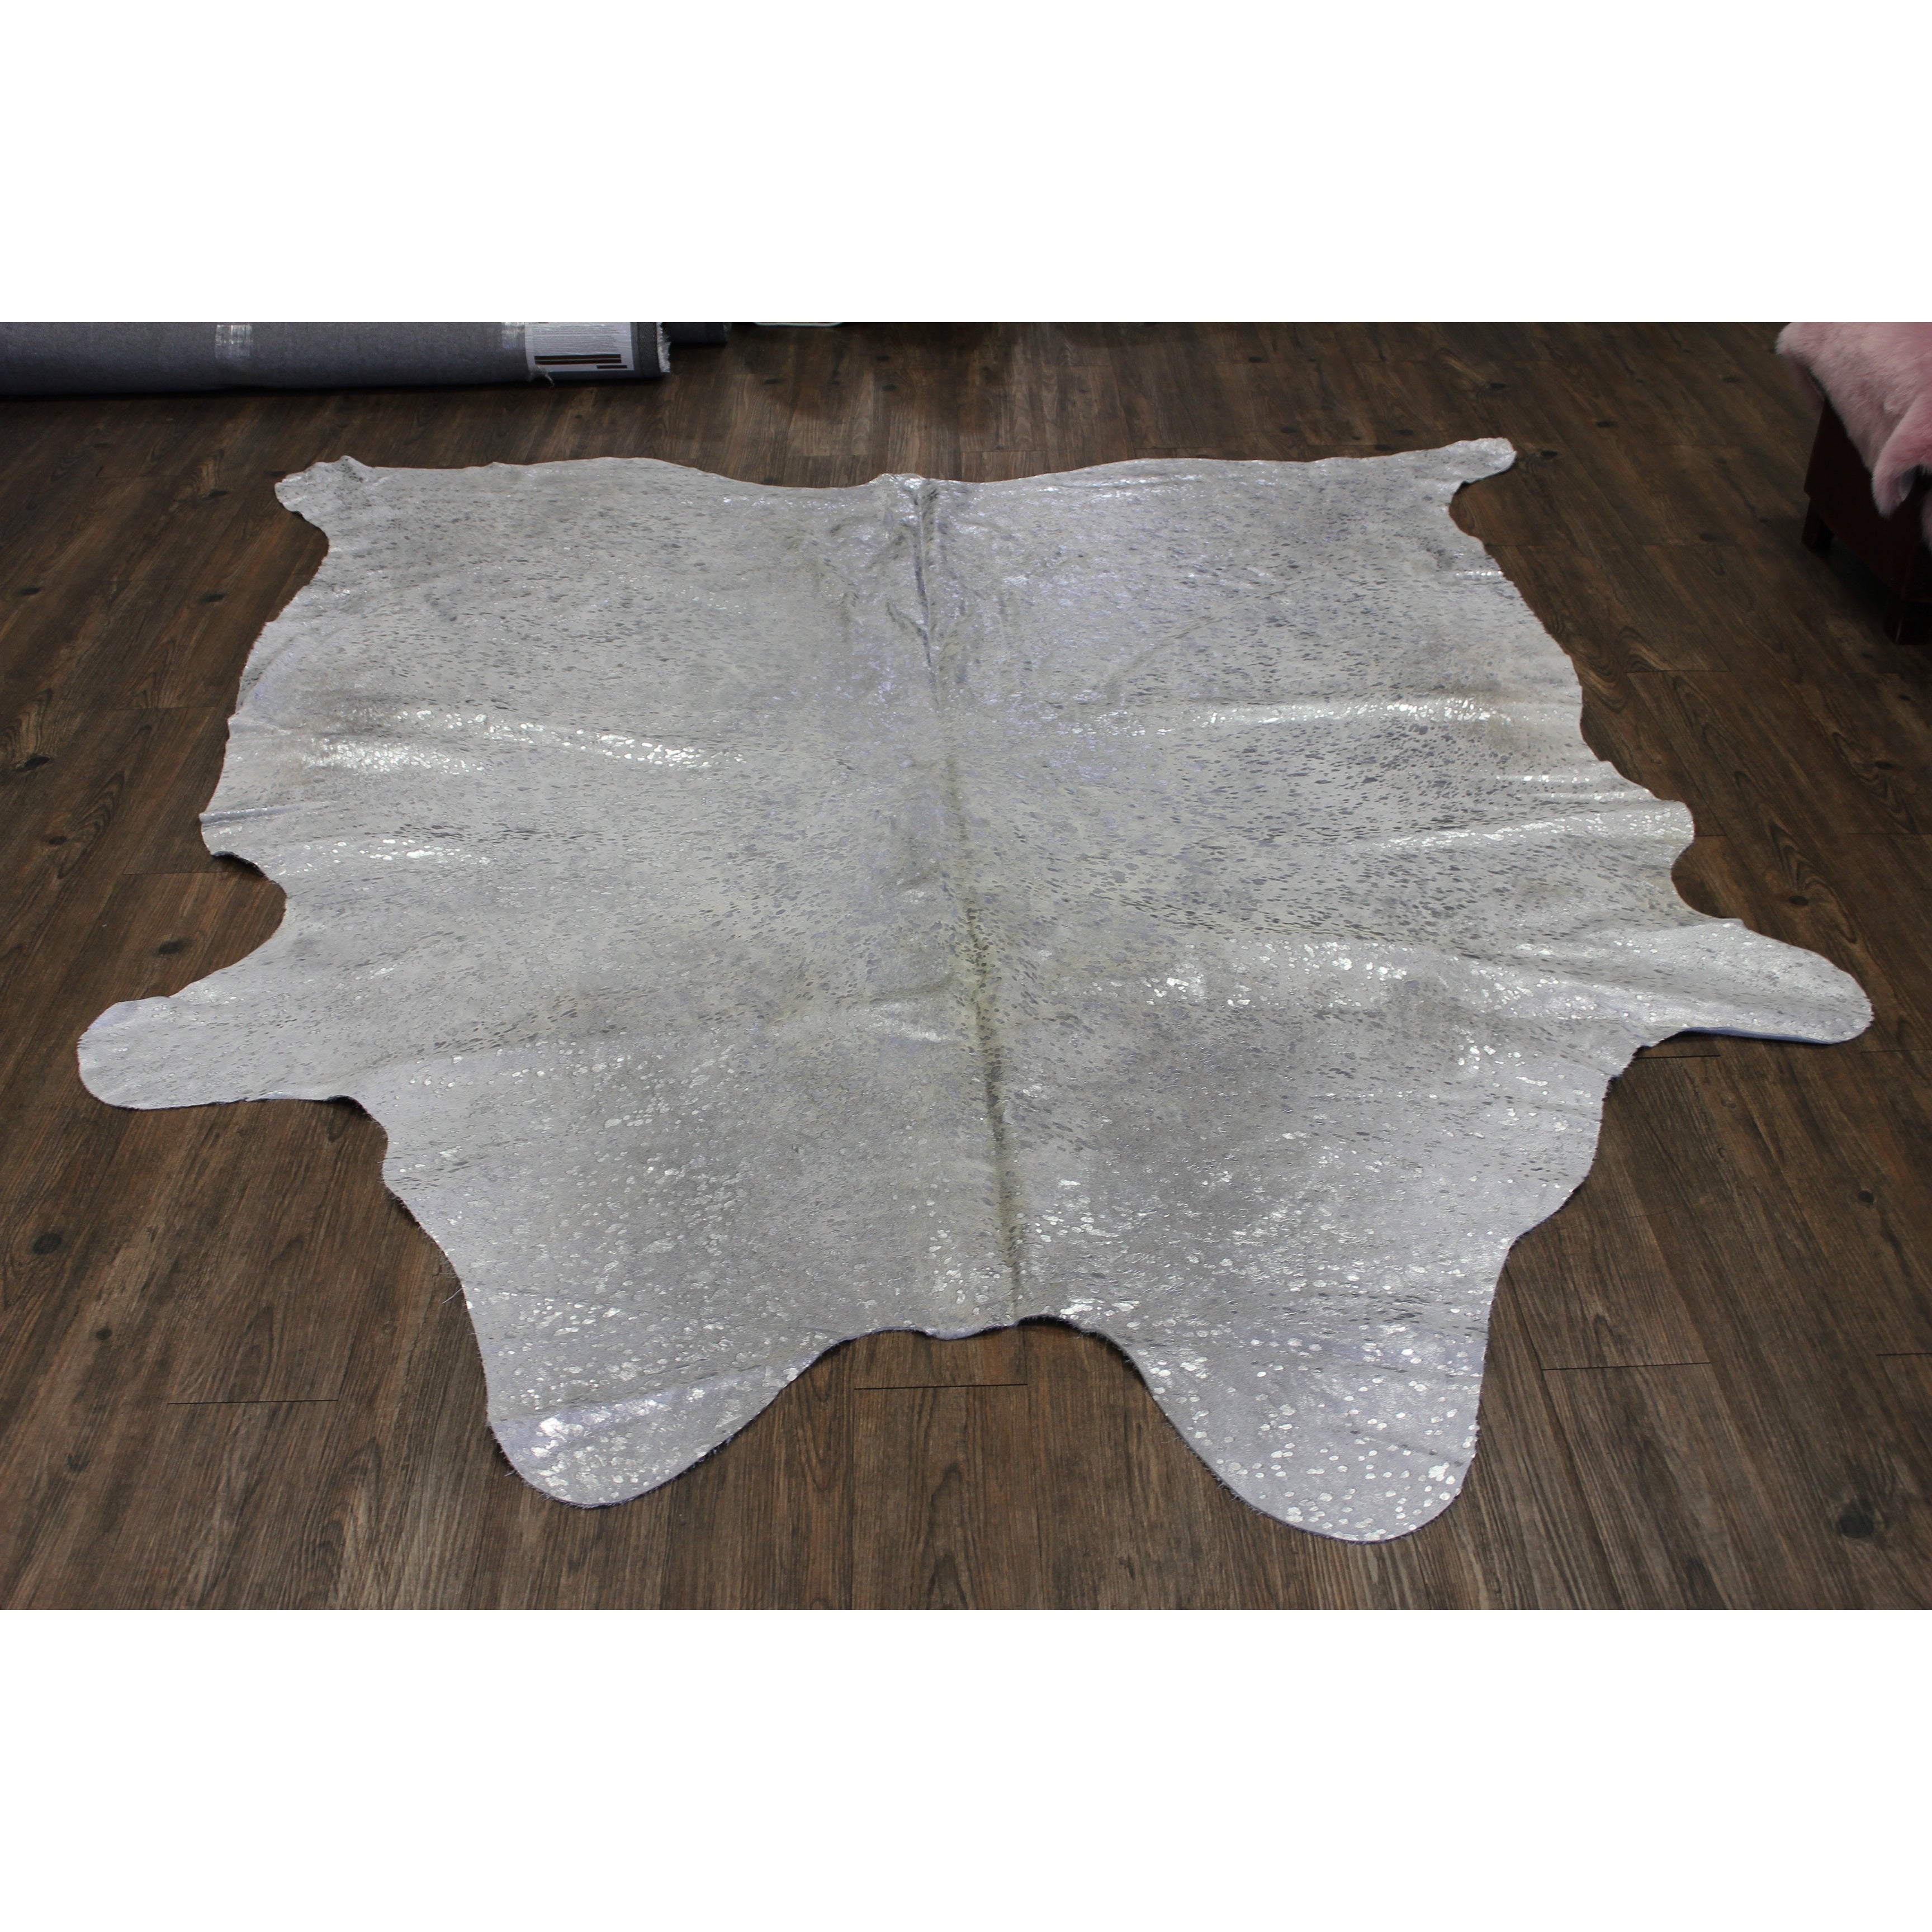 Silver Metallic On White Large Real Natural Cowhide Rug Area Rugs Overstock 21707194